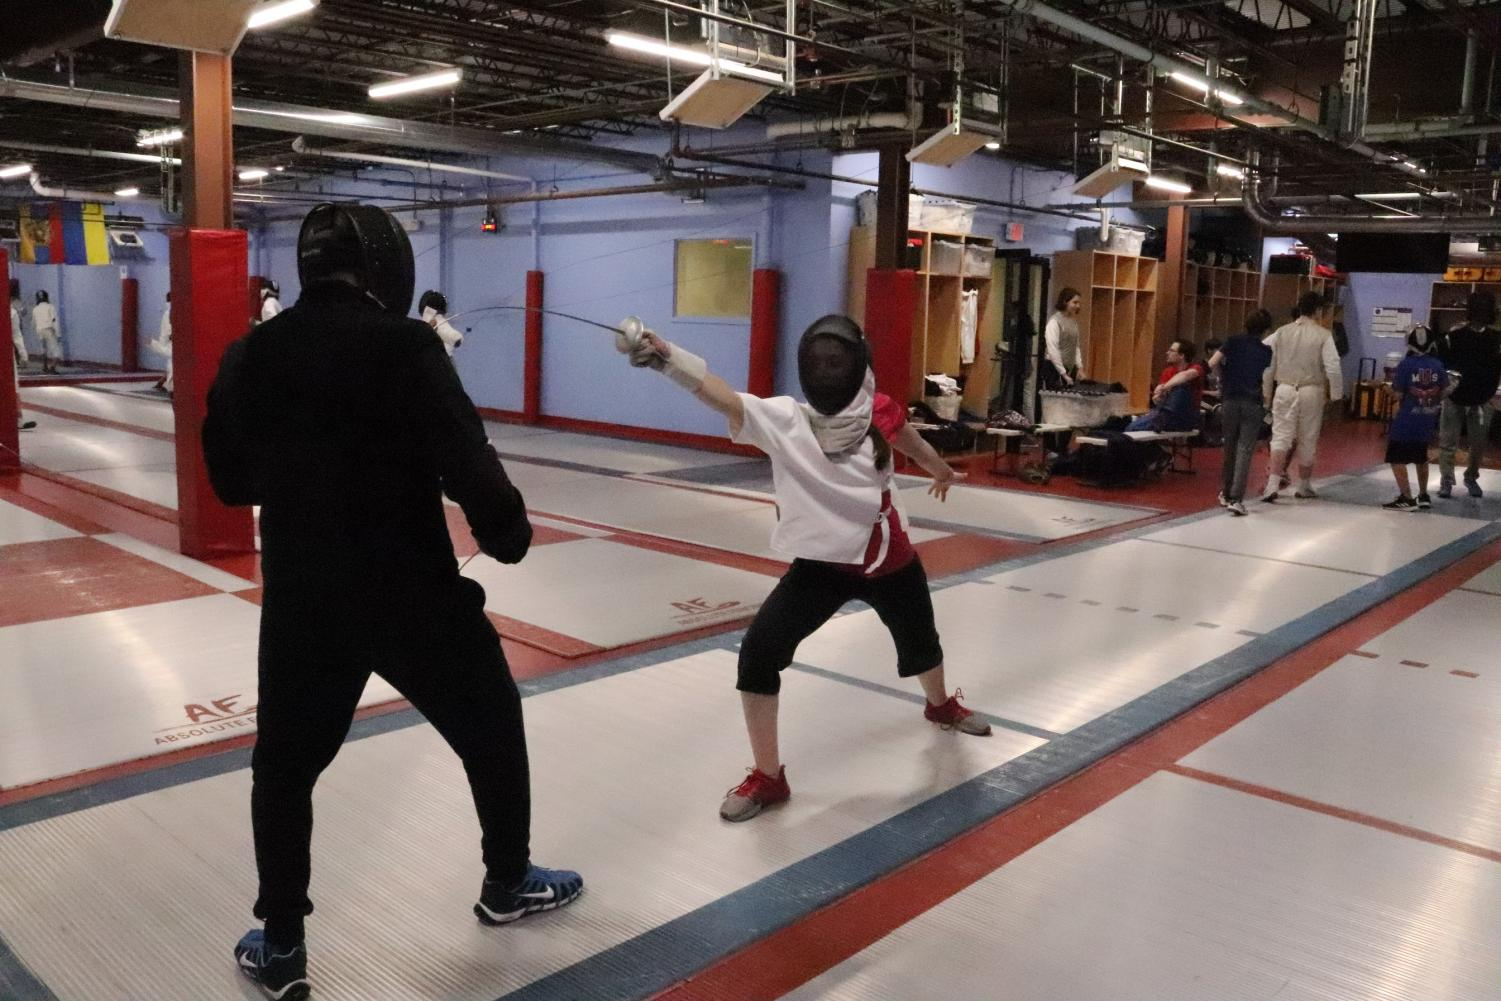 Mya Schroder (11) spars with coach Sergey Petrosyan at a Raptors practice on Thursday, Nov. 21. Schroder has attended the Raptors club at MUS since late August to improve her fencing.